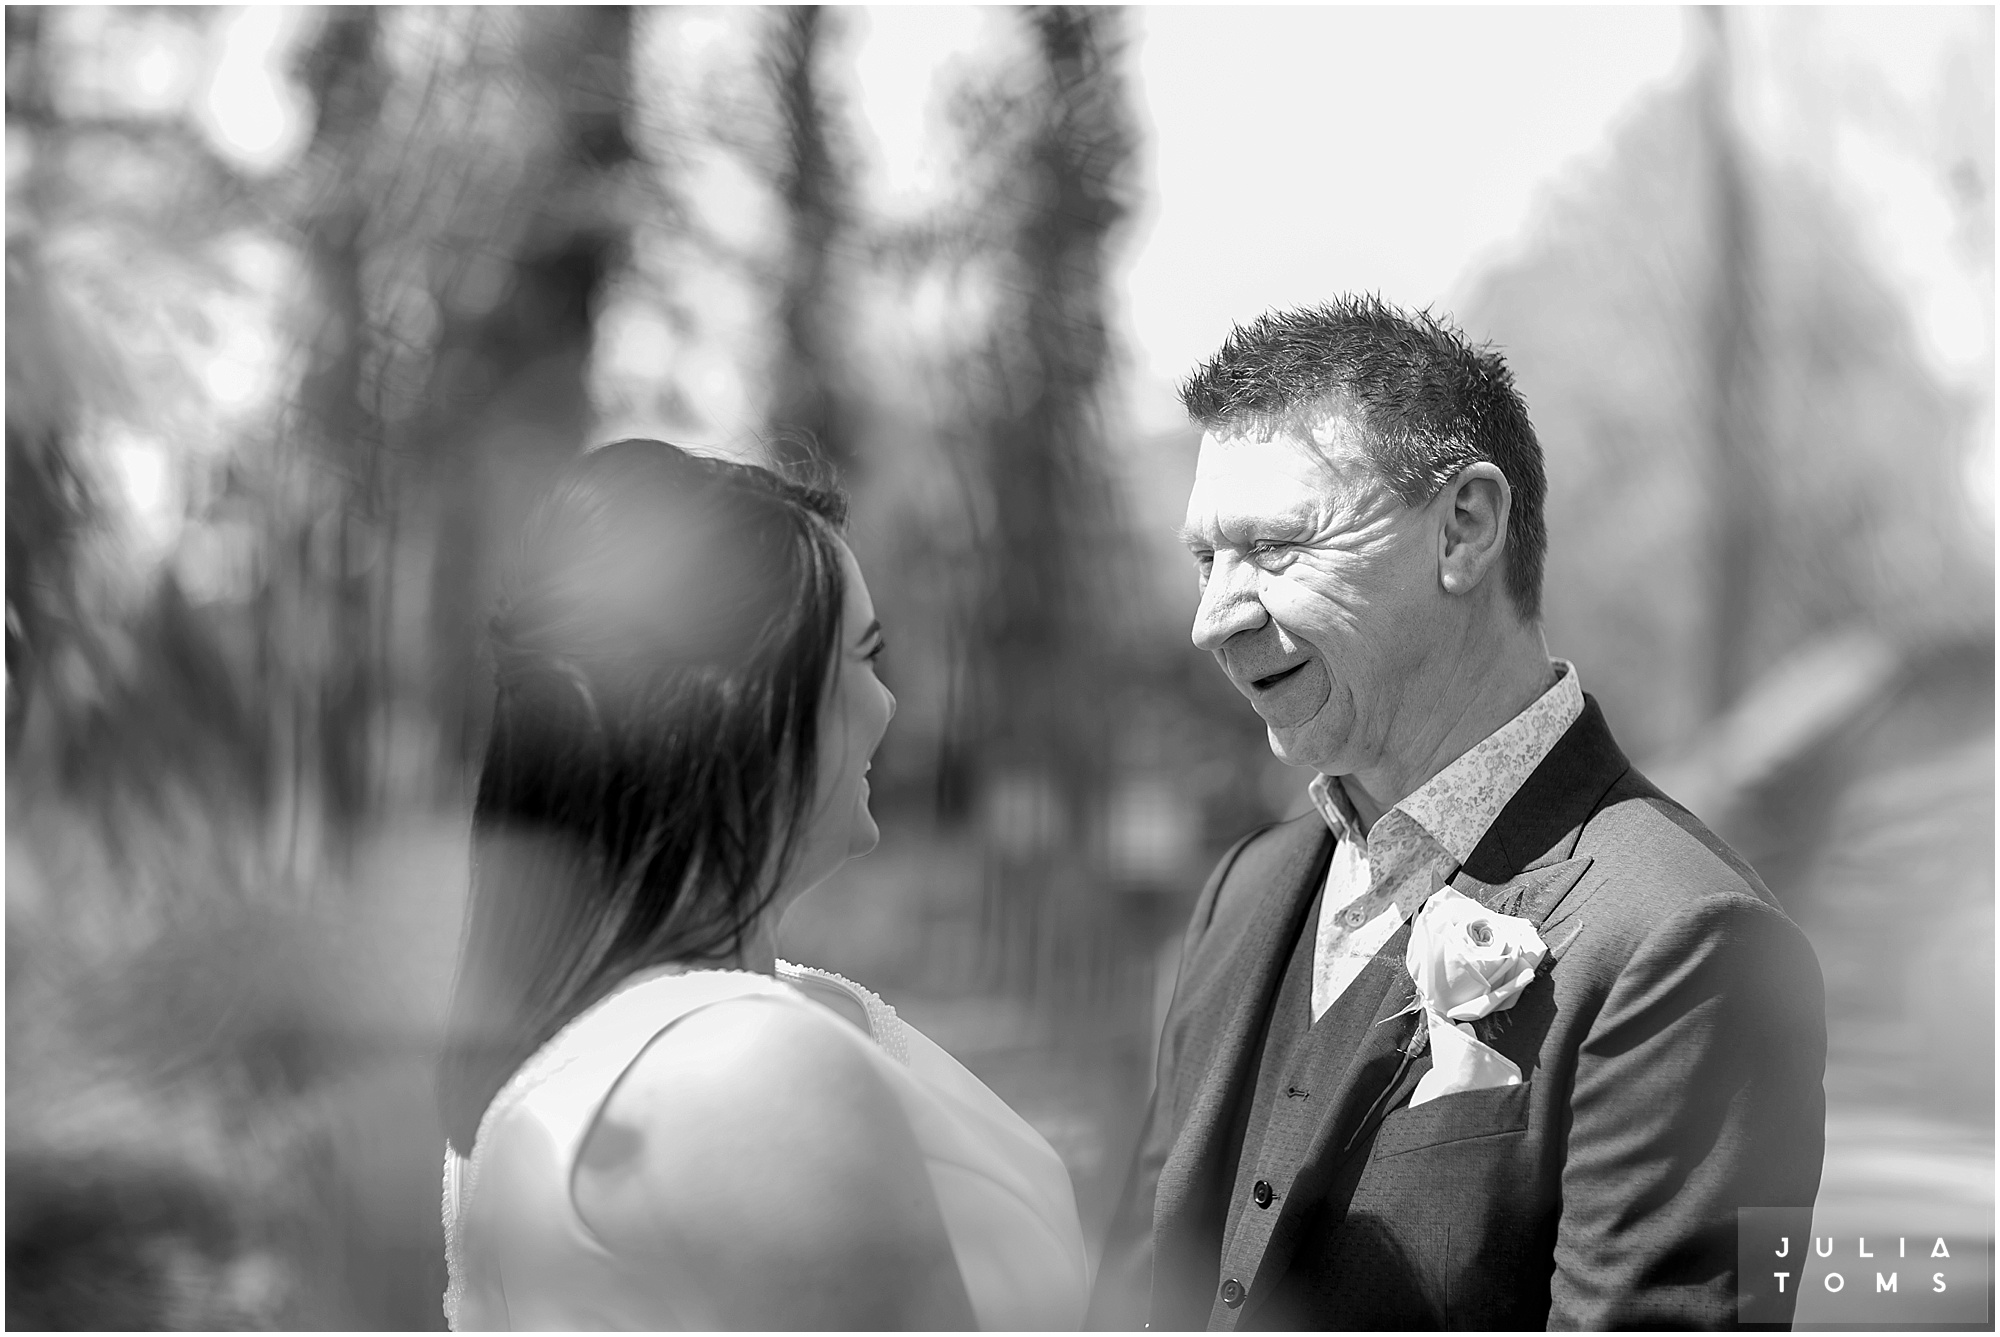 hampshire_wedding_photographer_juliatoms_006.jpg